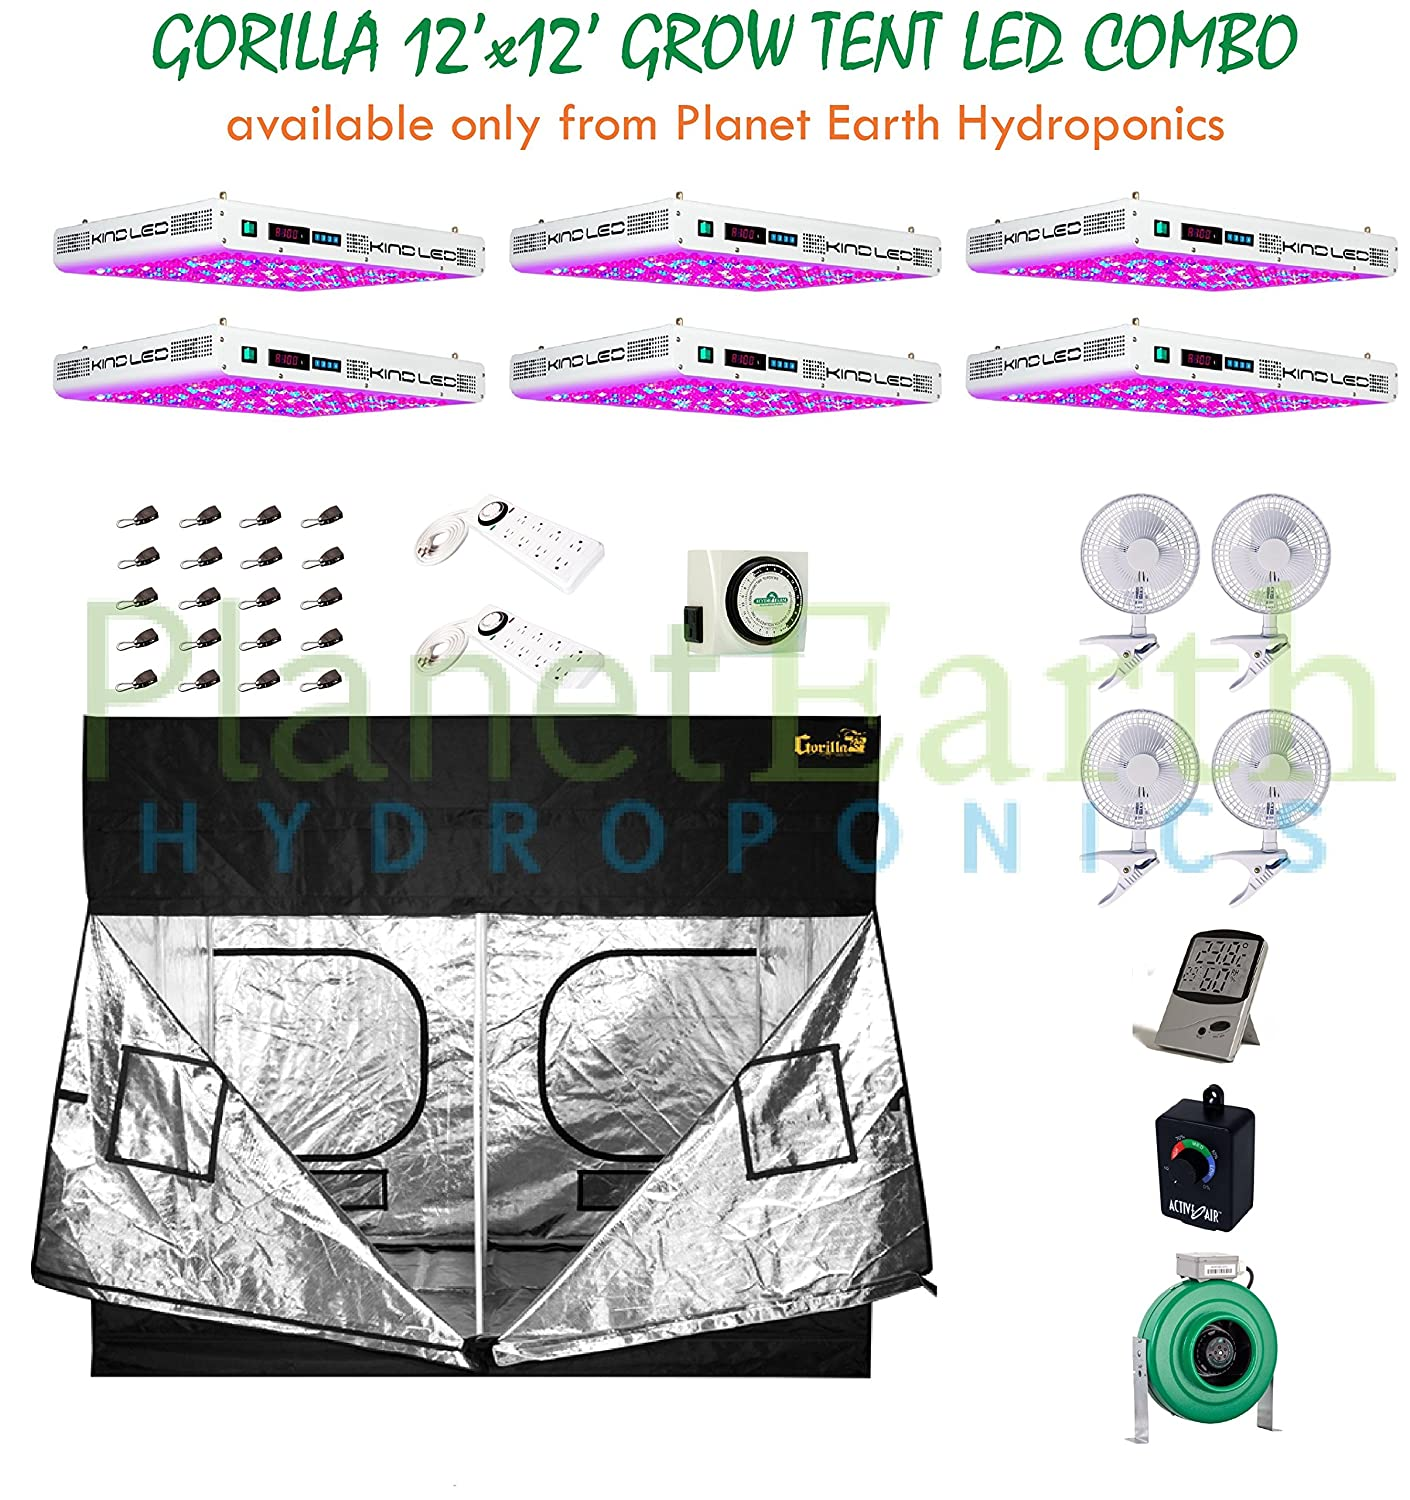 Gorilla Grow Tent u2013 12 x 12 Foot with complete package  sc 1 st  Buy Cheap Grow Tents & All About Gorilla Grow Tent u2013 12 x 12 Foot u2013 Buy Cheap Grow Tents